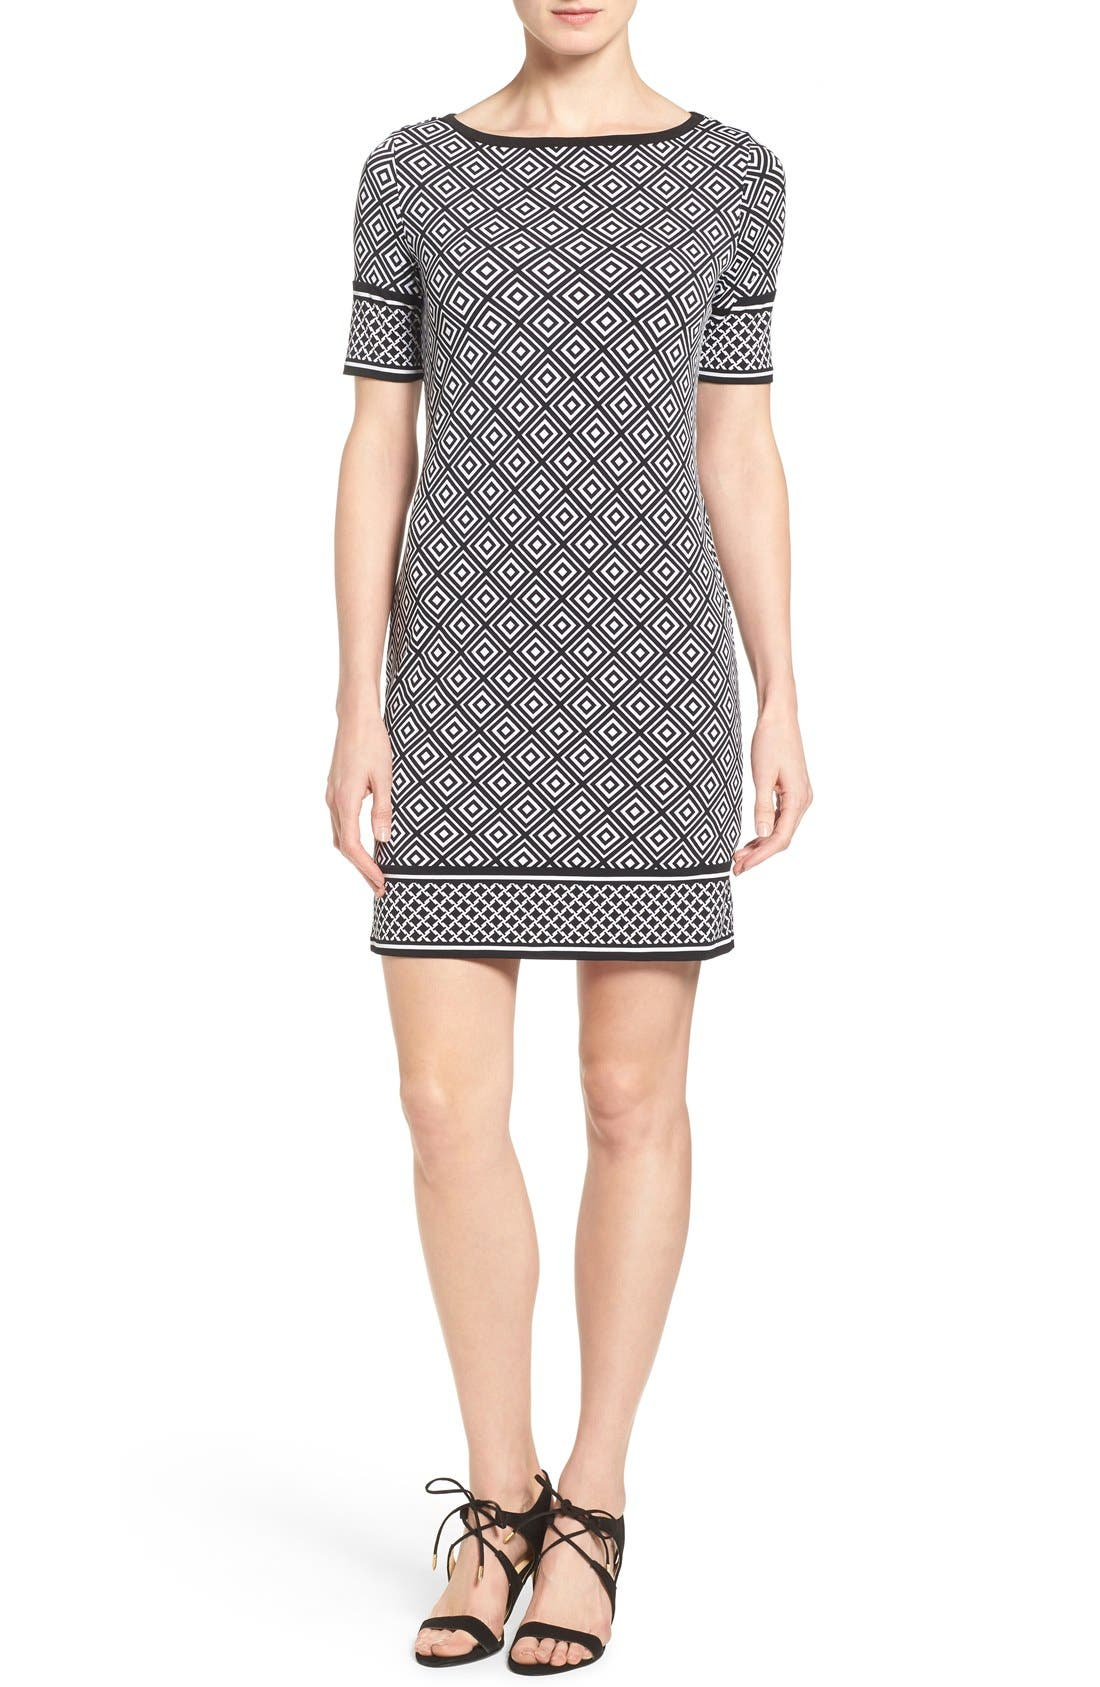 Alternate Image 1 Selected - MICHAEL Michael Kors 'Loflin' Print Shift Dress (Regular & Petite)